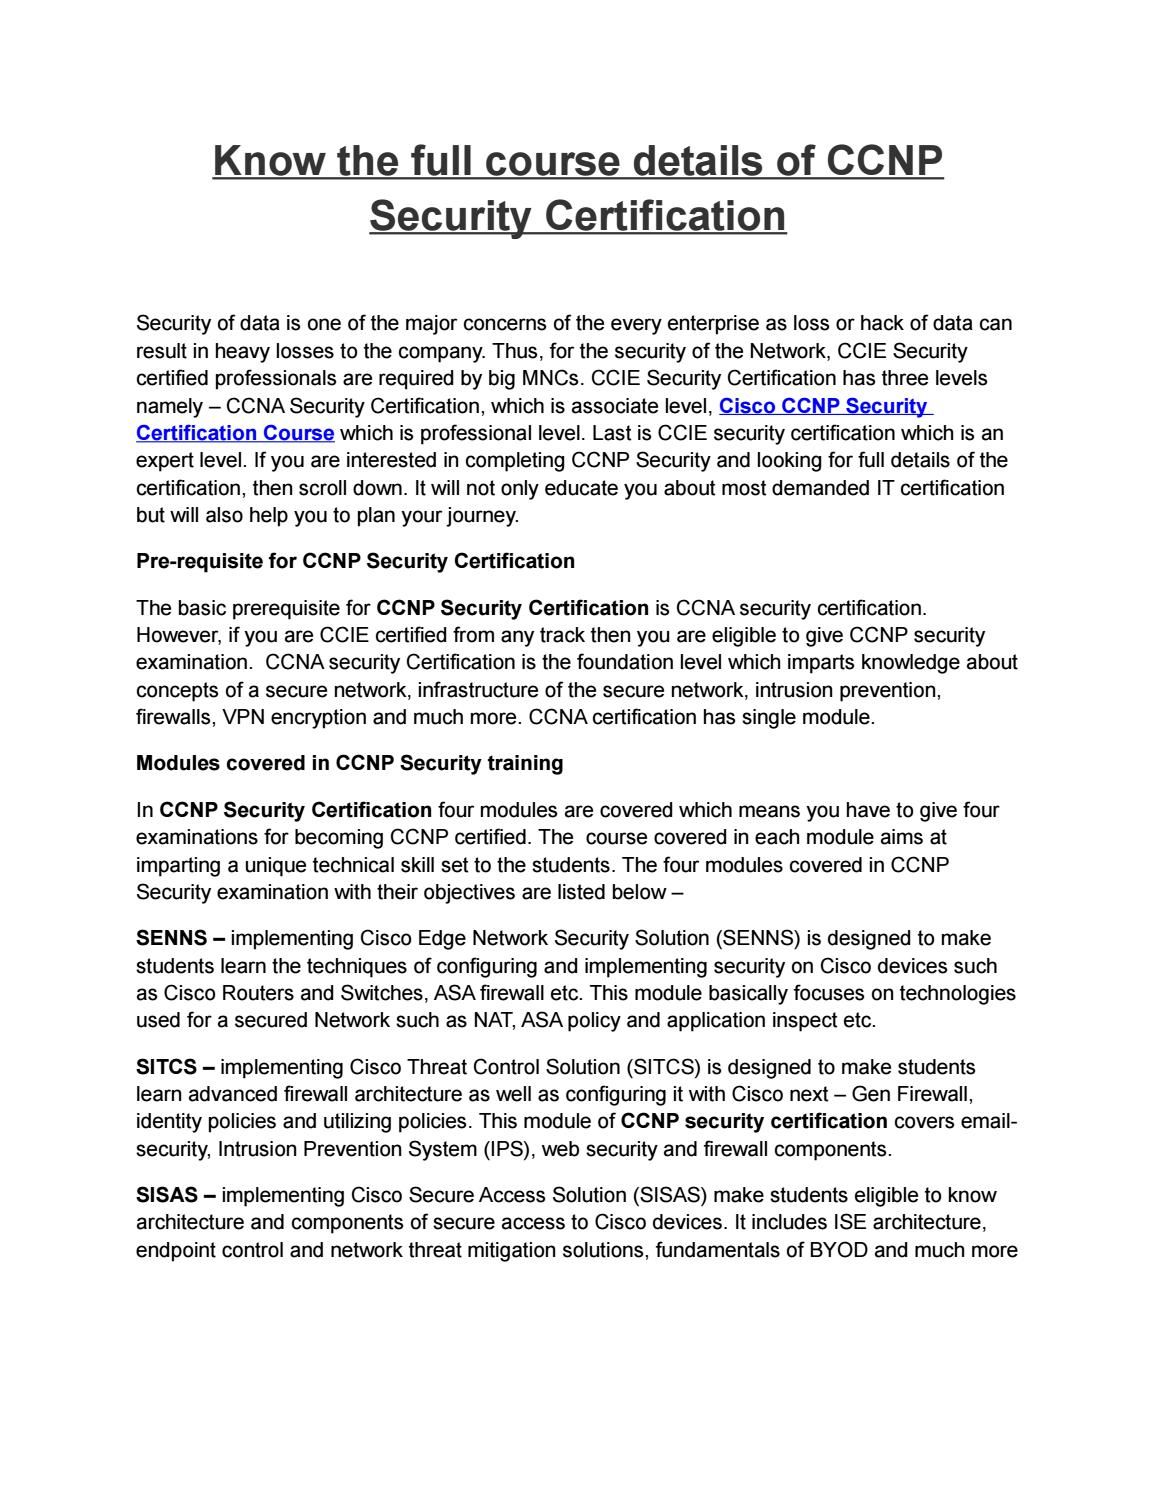 Know the full course details of ccnp security certification 1betcityfo Gallery